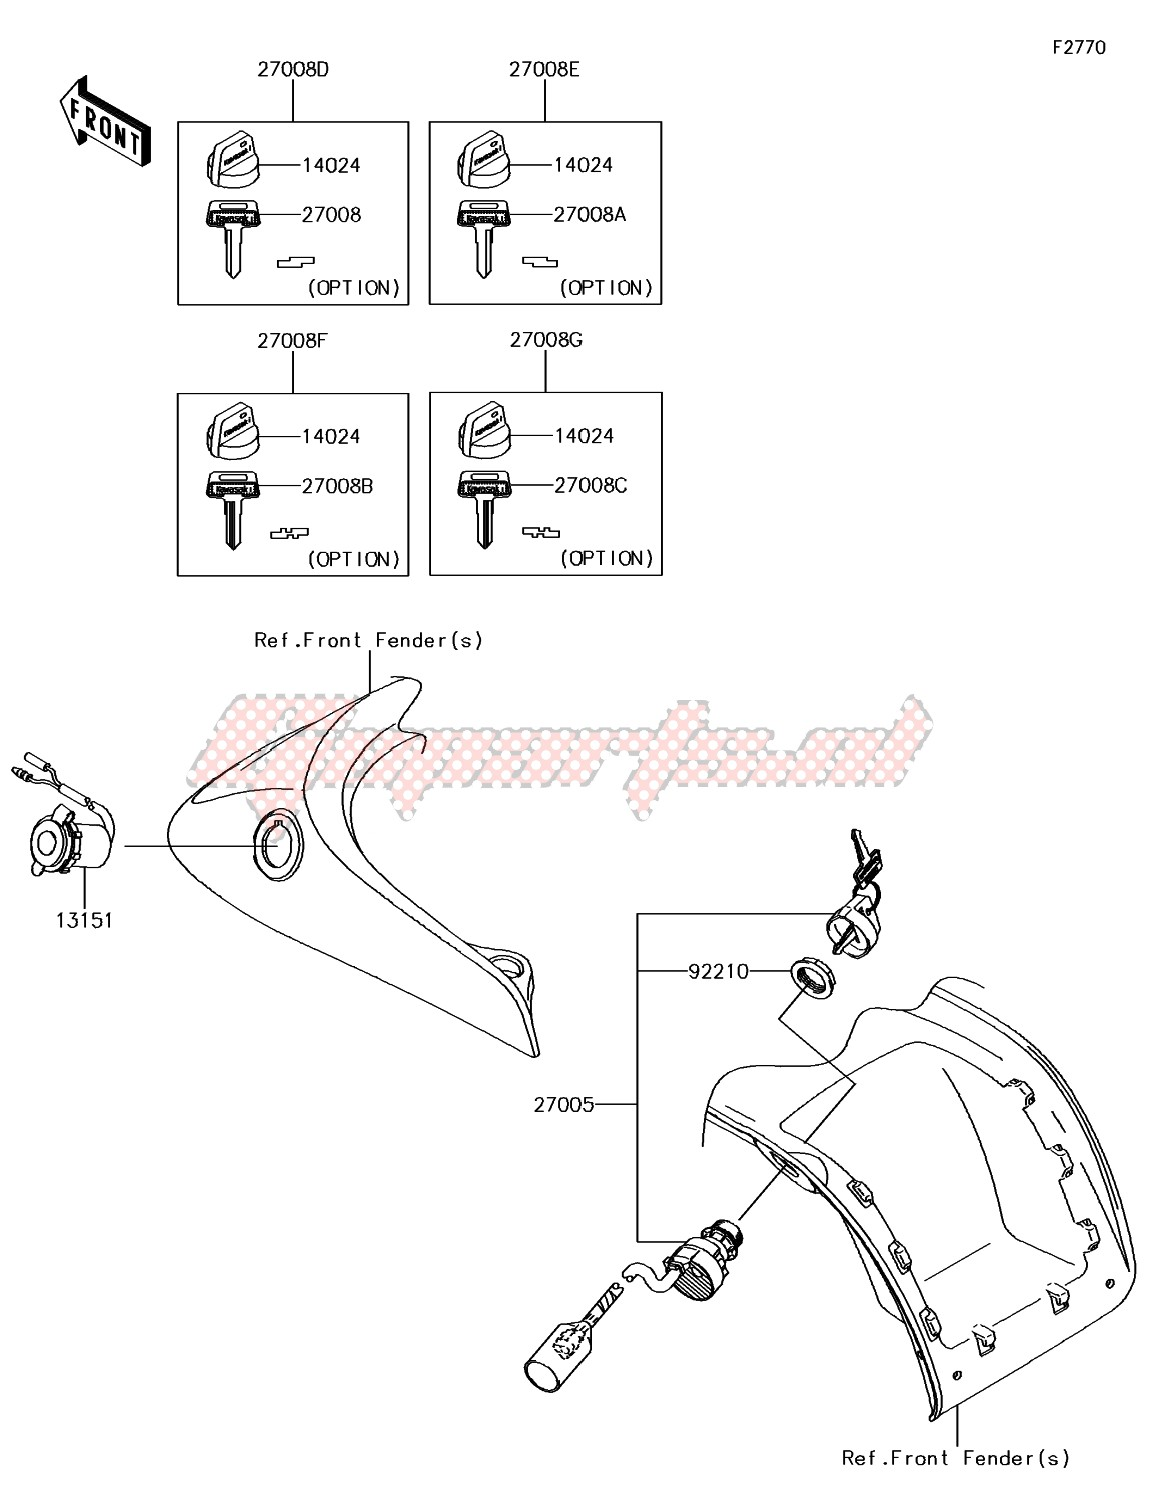 Frame-Ignition Switch